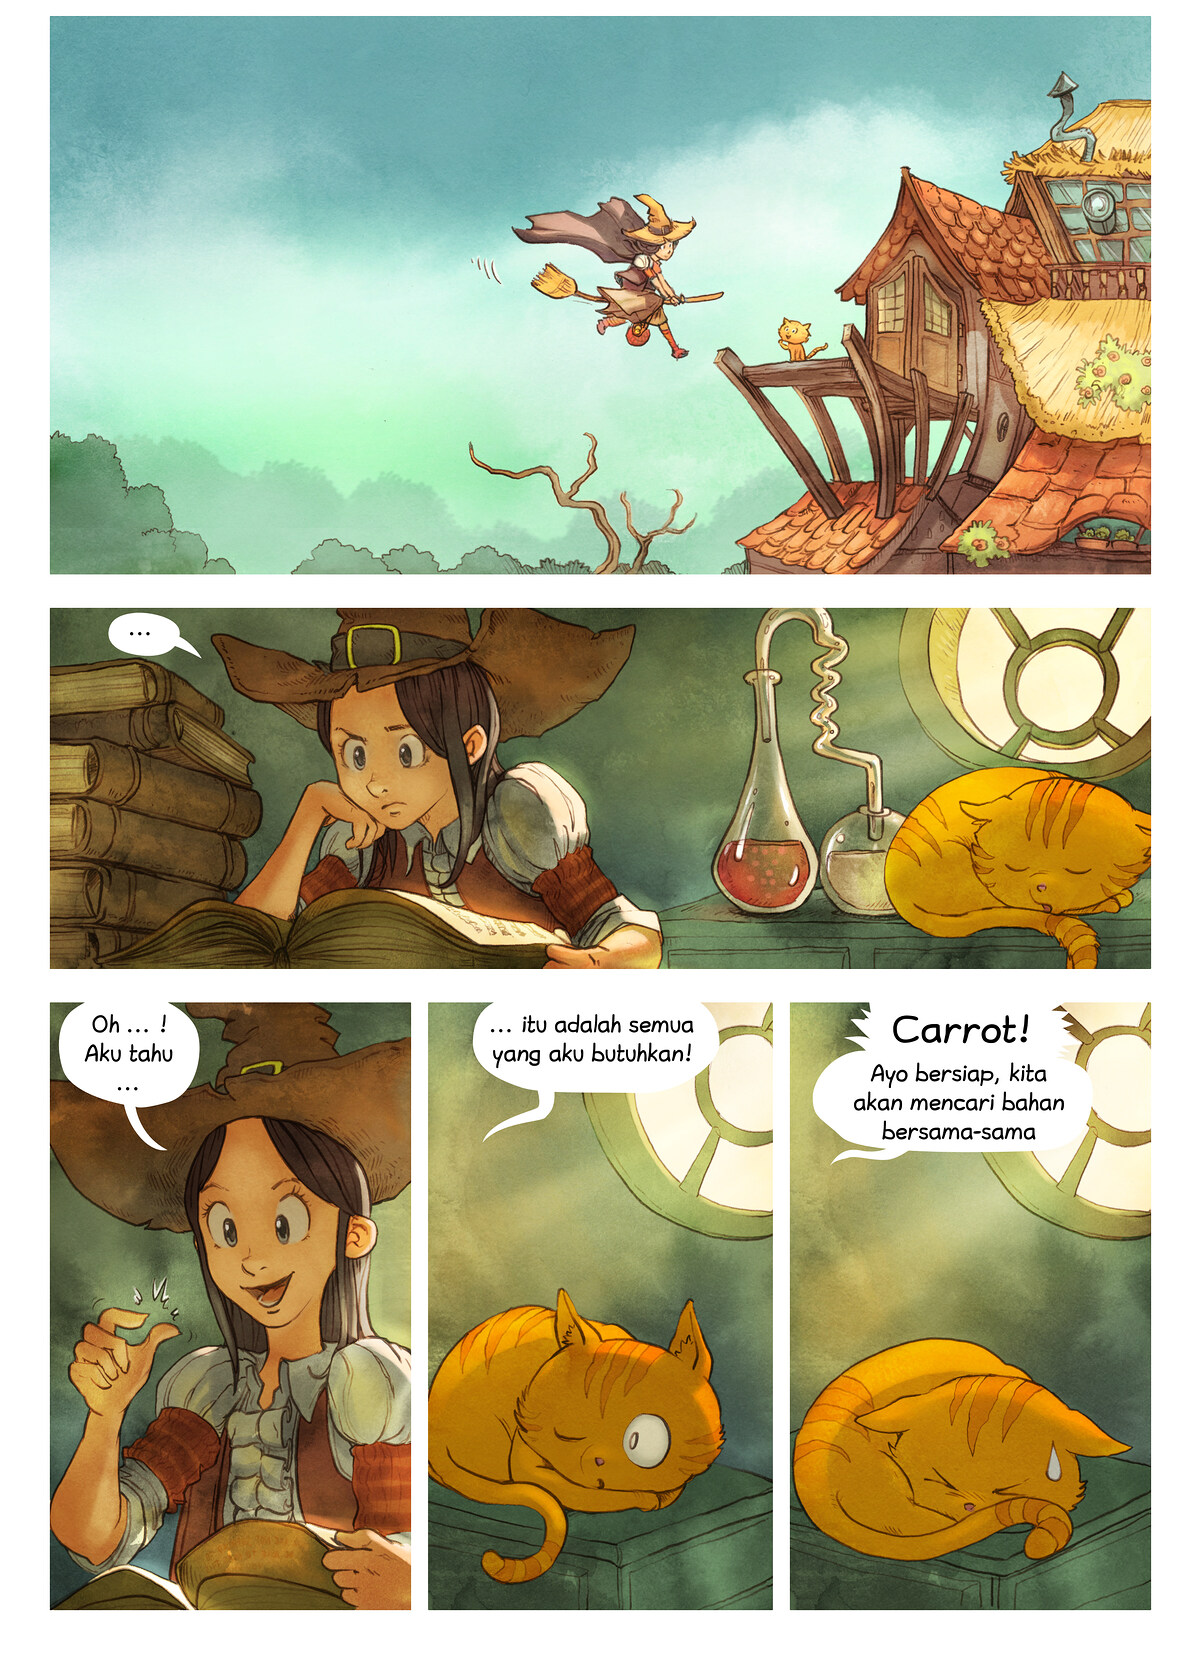 A webcomic page of Pepper&Carrot, episode 3 [id], halaman 4